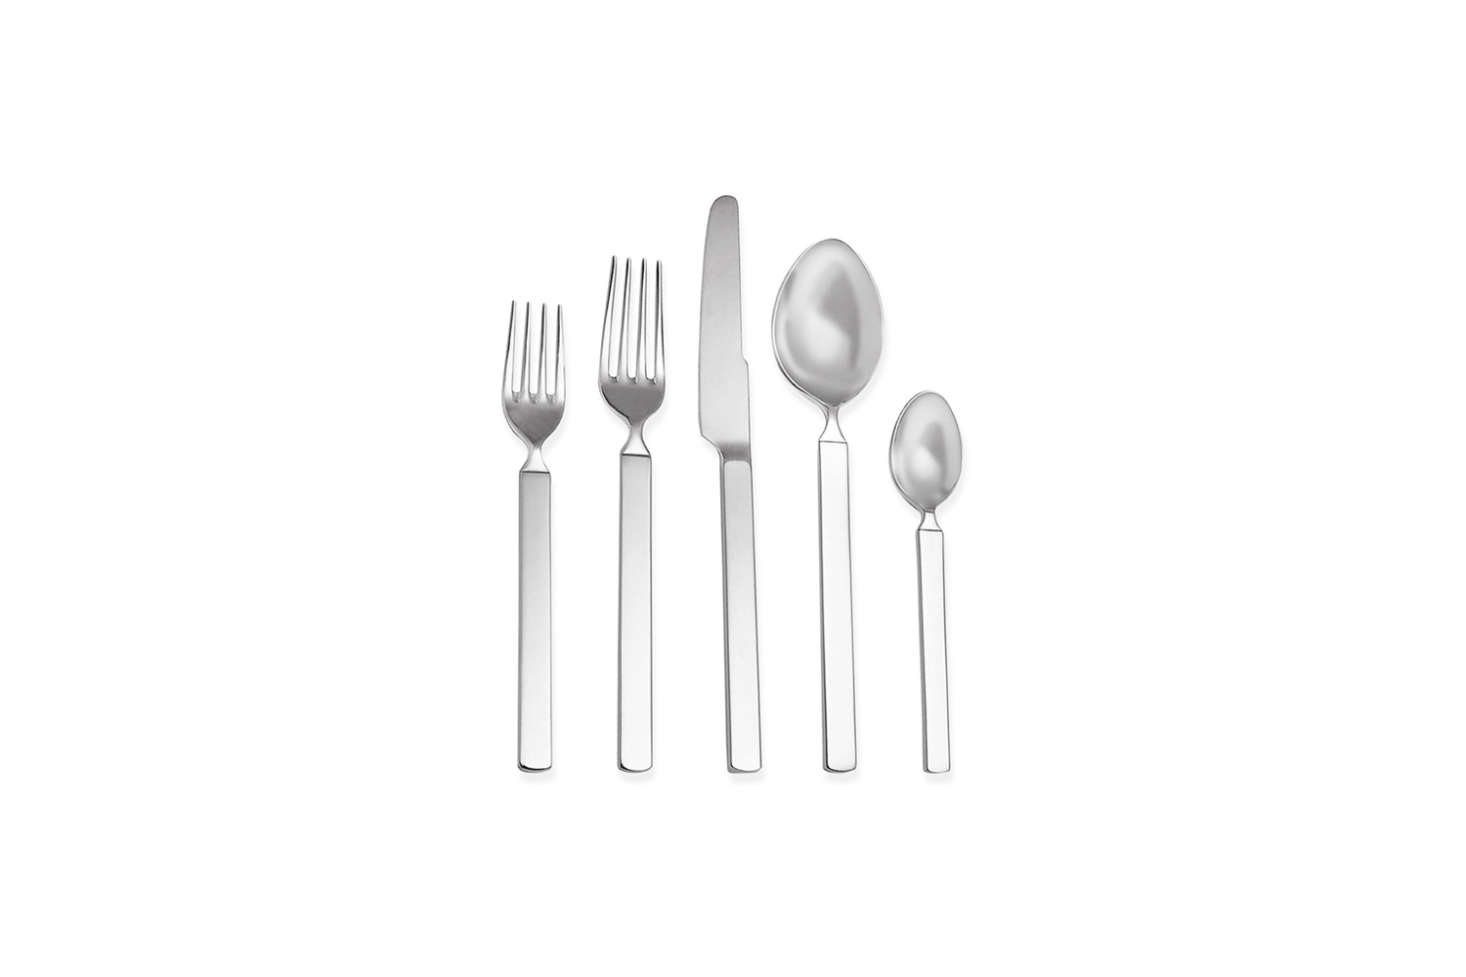 """Designed by Achille Castiglioni for Alessi in 1982, the Dry Line Cutlerycollection is designed with flat steel bars as handles and matte finish stainless steel. It has been described as """"the reinterpretation of classic Italian tableware in a contemporary key."""" The 5-piece set is $62.95 at the MoMA Design Store."""